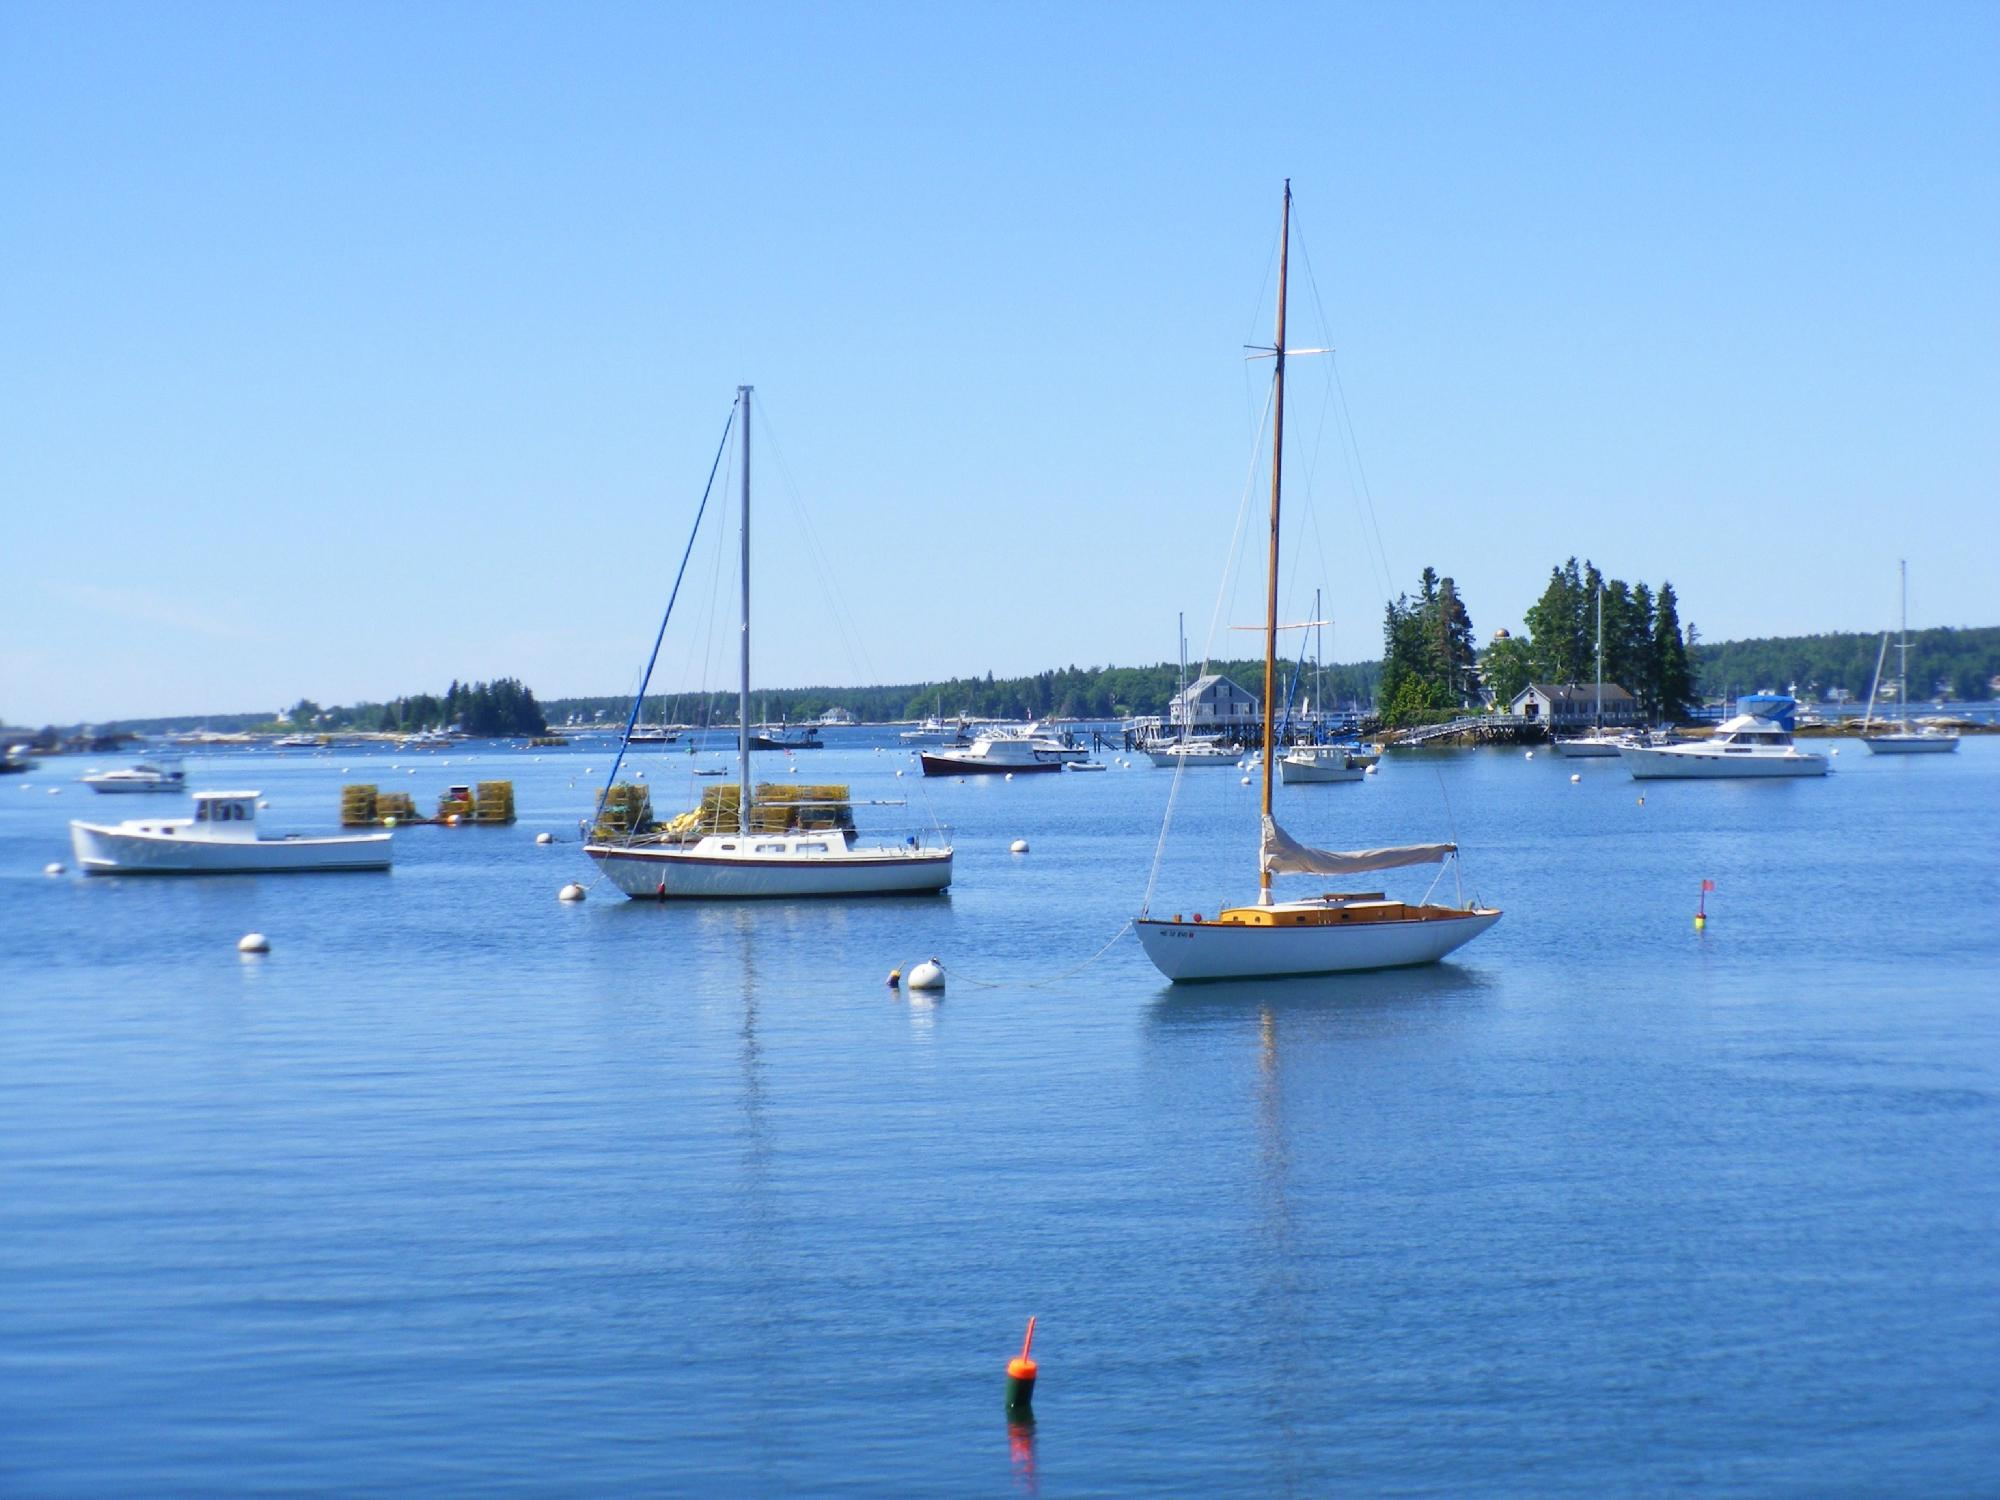 A Beautiful June Day At The Harbor.